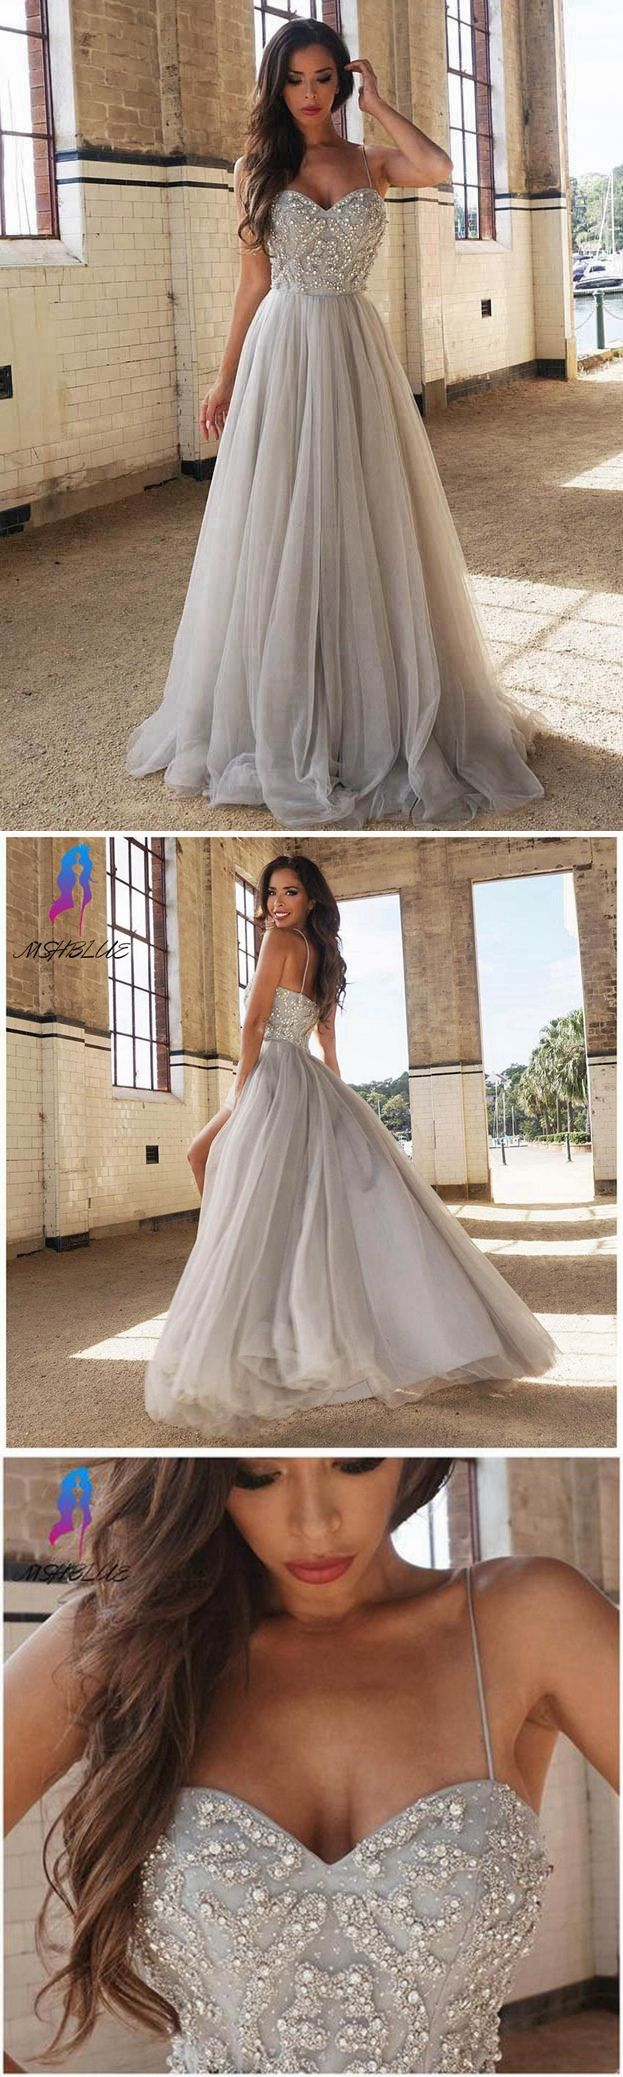 Silver prom dress prom dressesgraduation party dresses prom